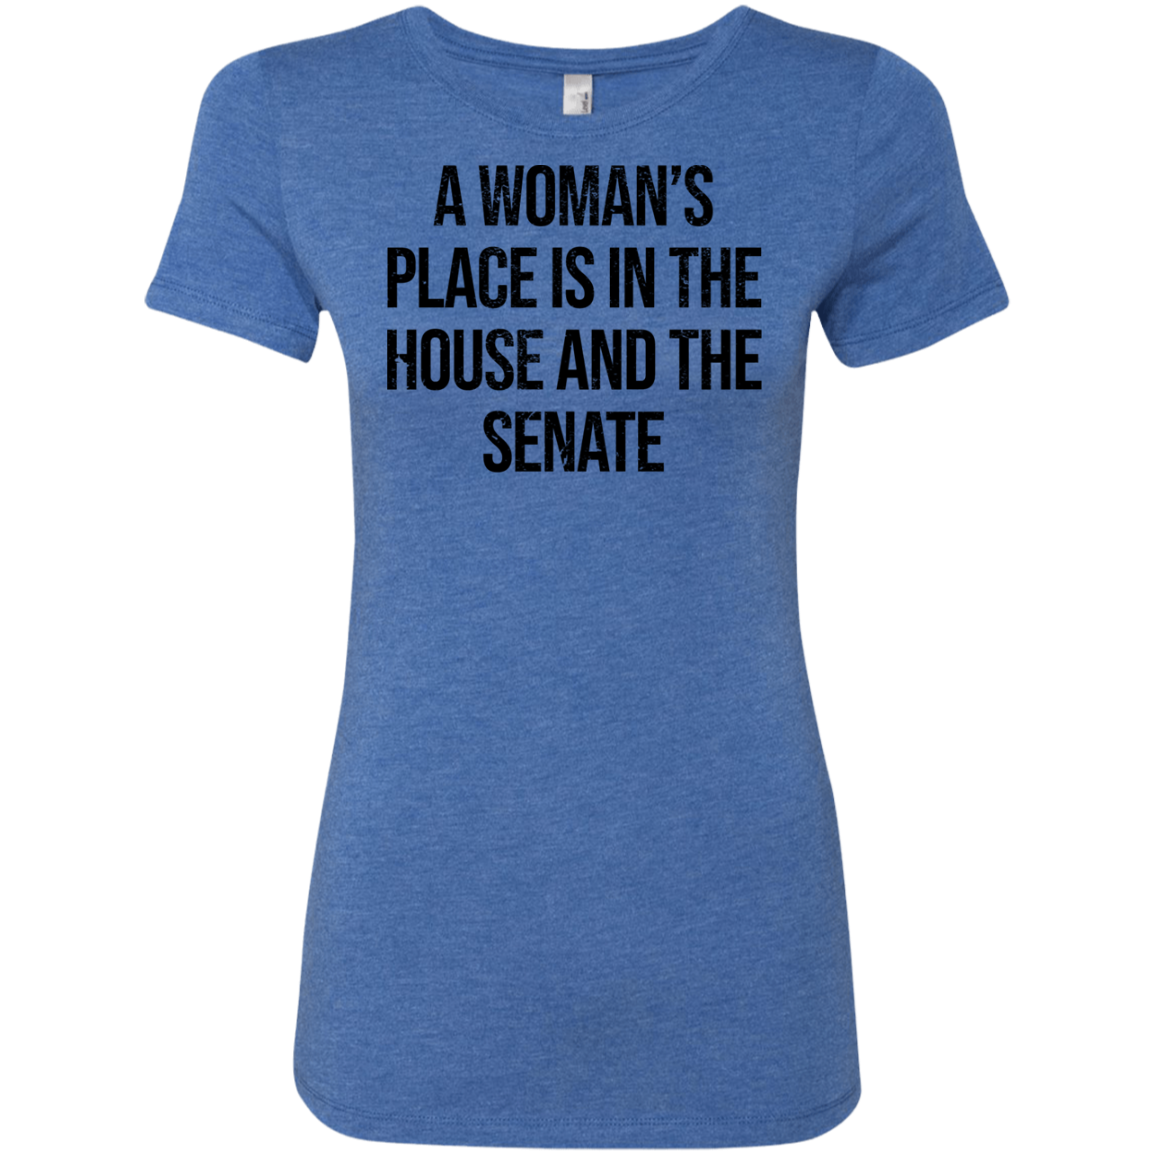 A Woman's Place Is In The House And The Senate Women's Classic Tee